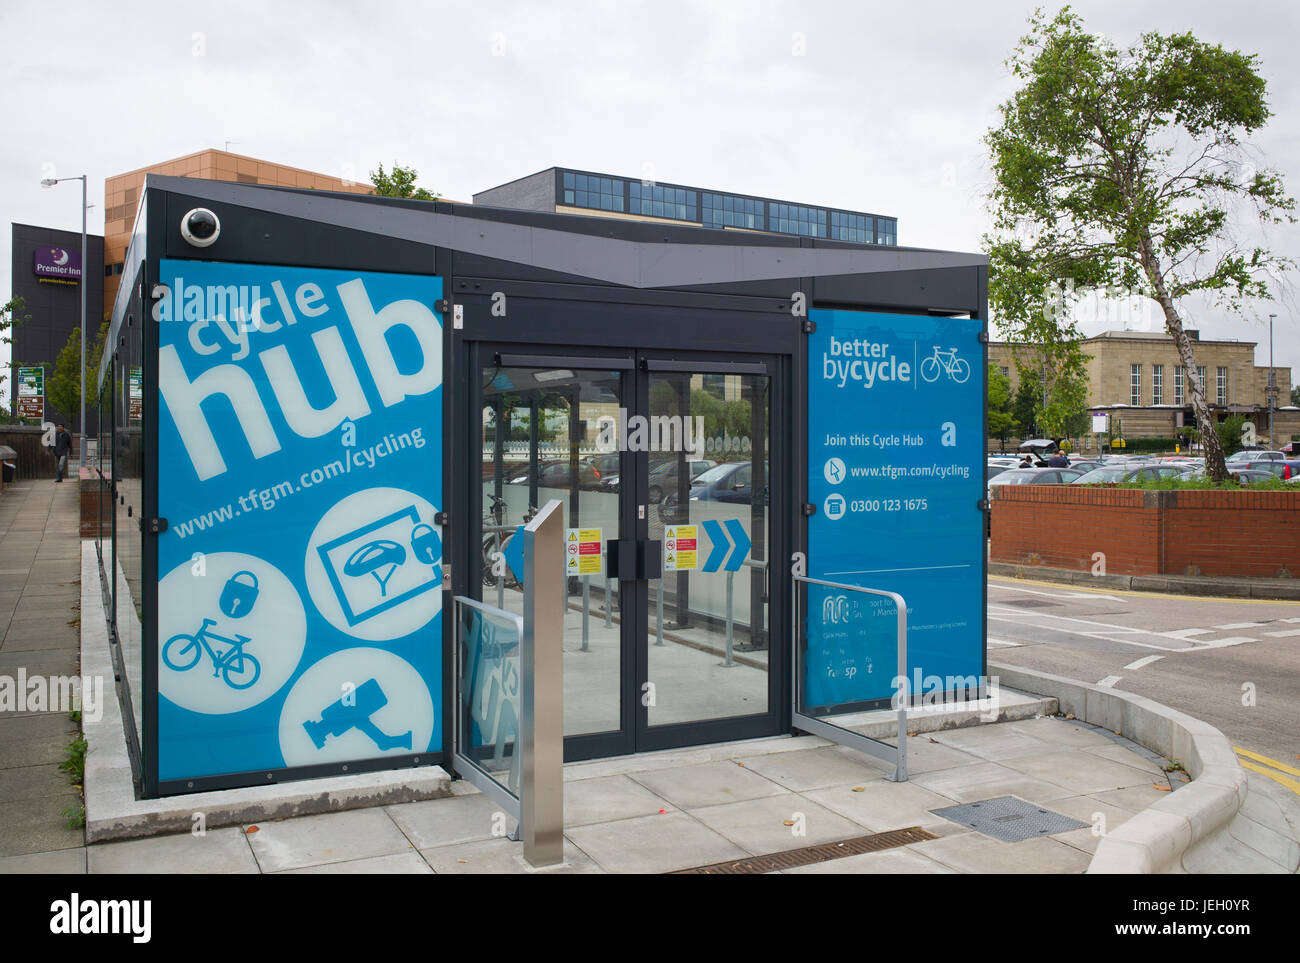 Cycle hub for bicycle parking adjacent to Bury Interchange tram and bus station, Bury, Greater Manchester, UK Stock Photo